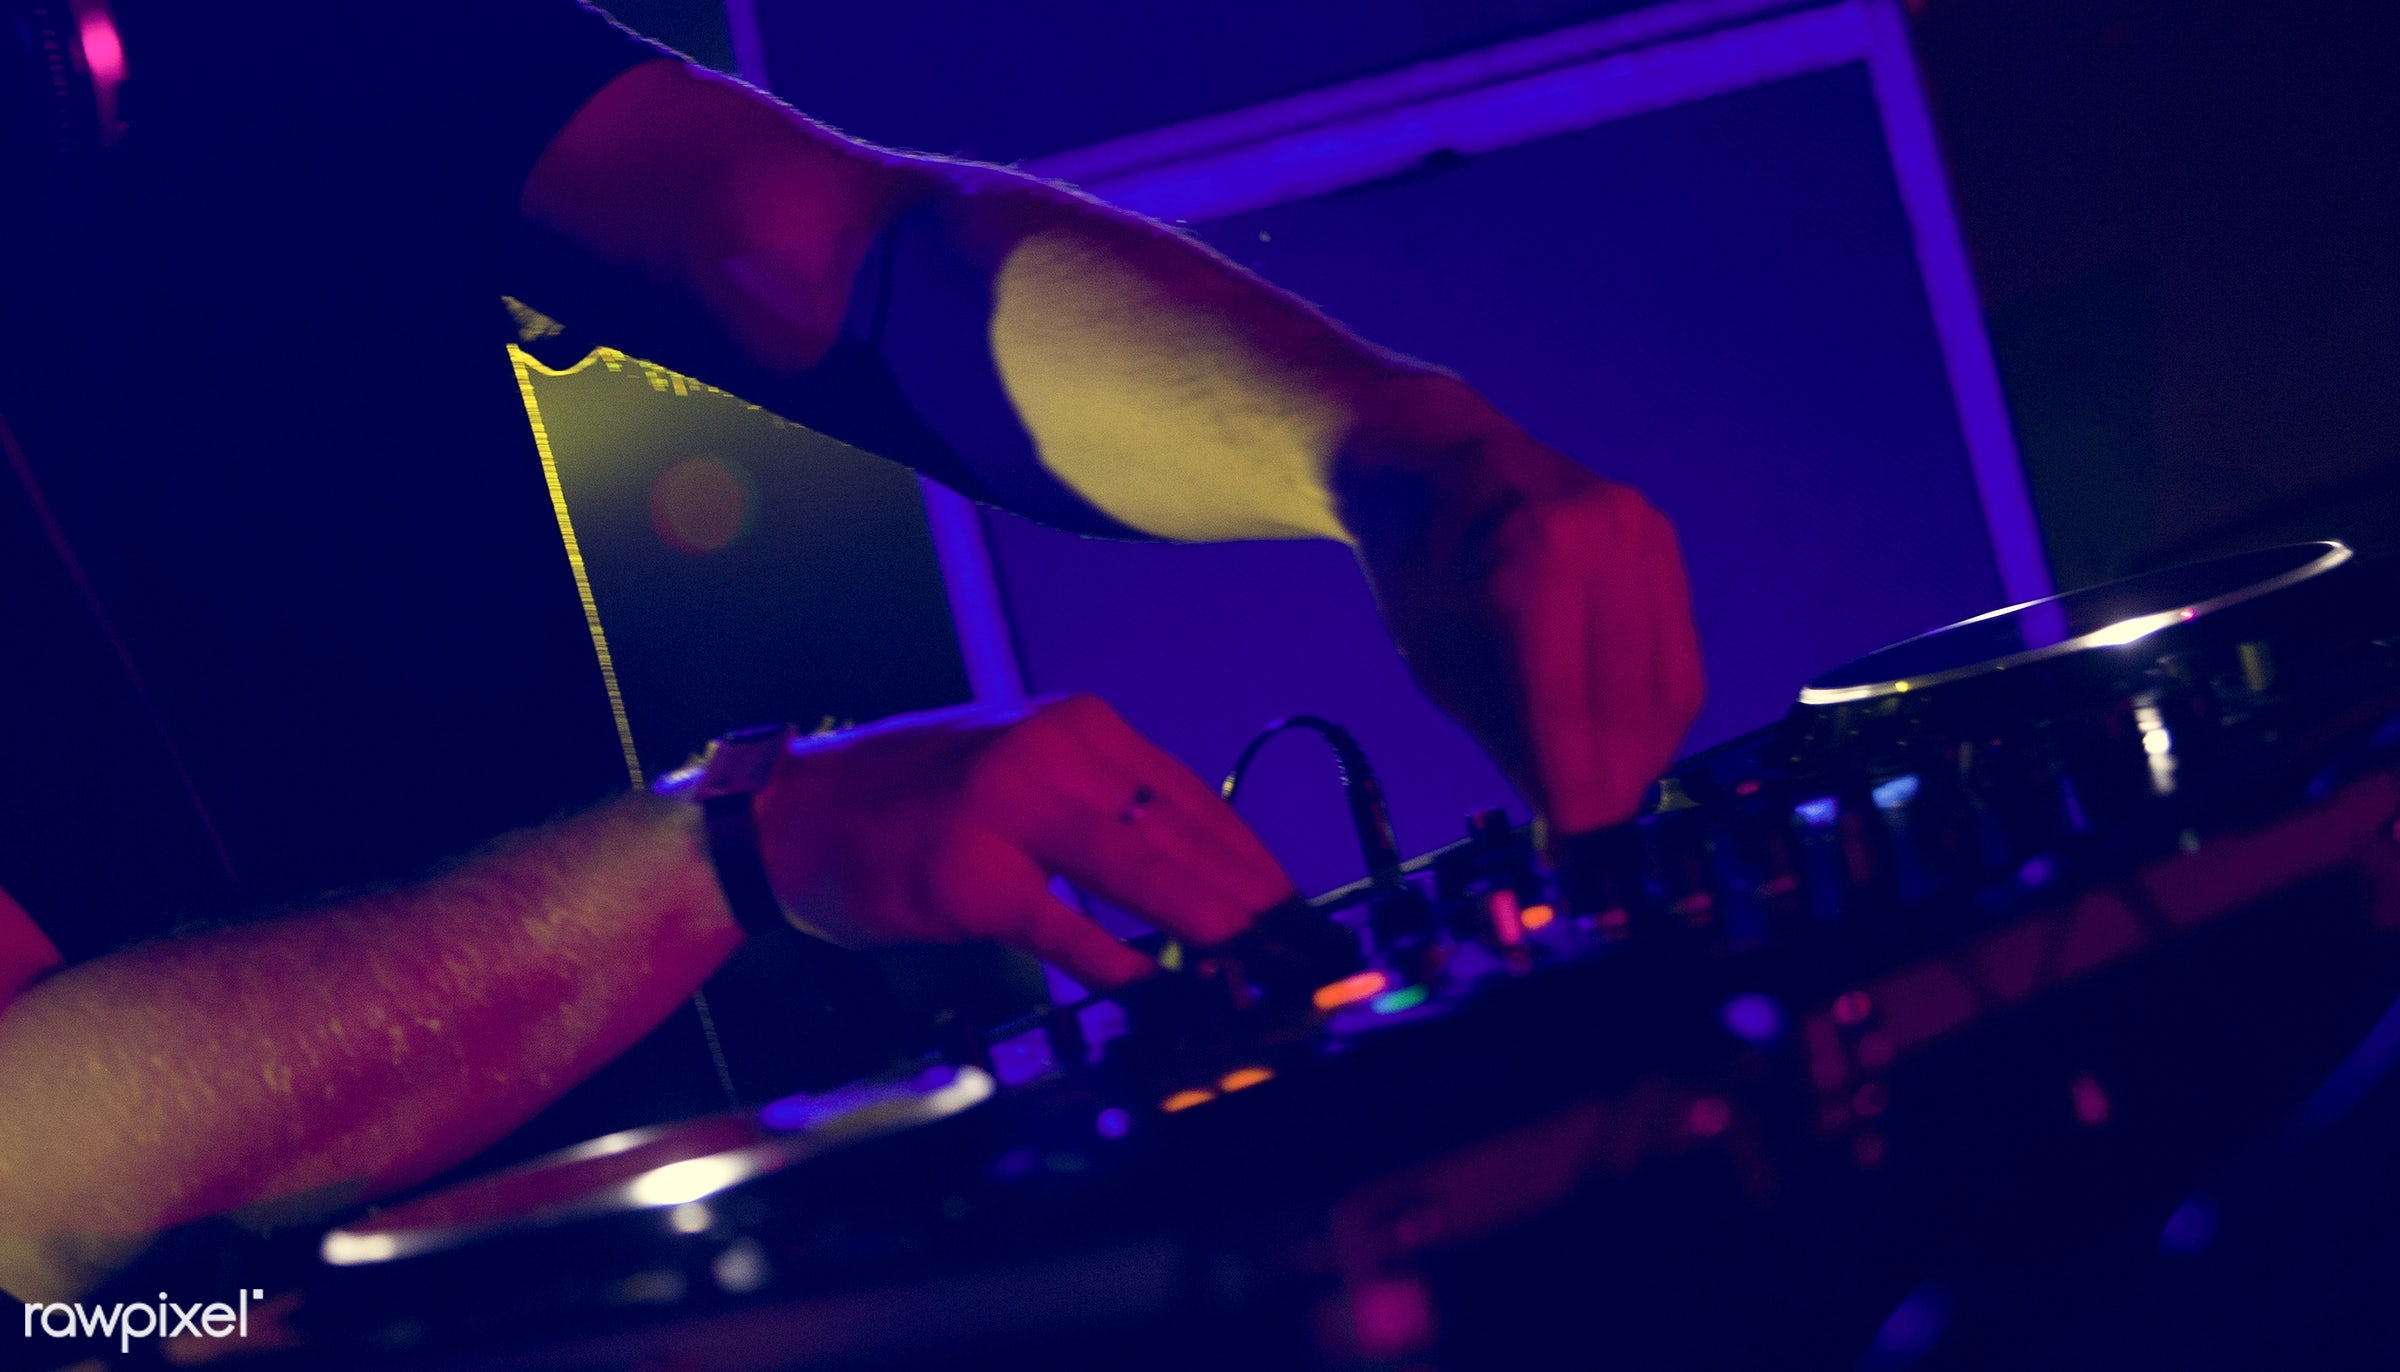 applauding, audience, audio, career, cheer, cheerful, club, clubbing, colors, concert, crowd, dance, dj, edm, electronic,...